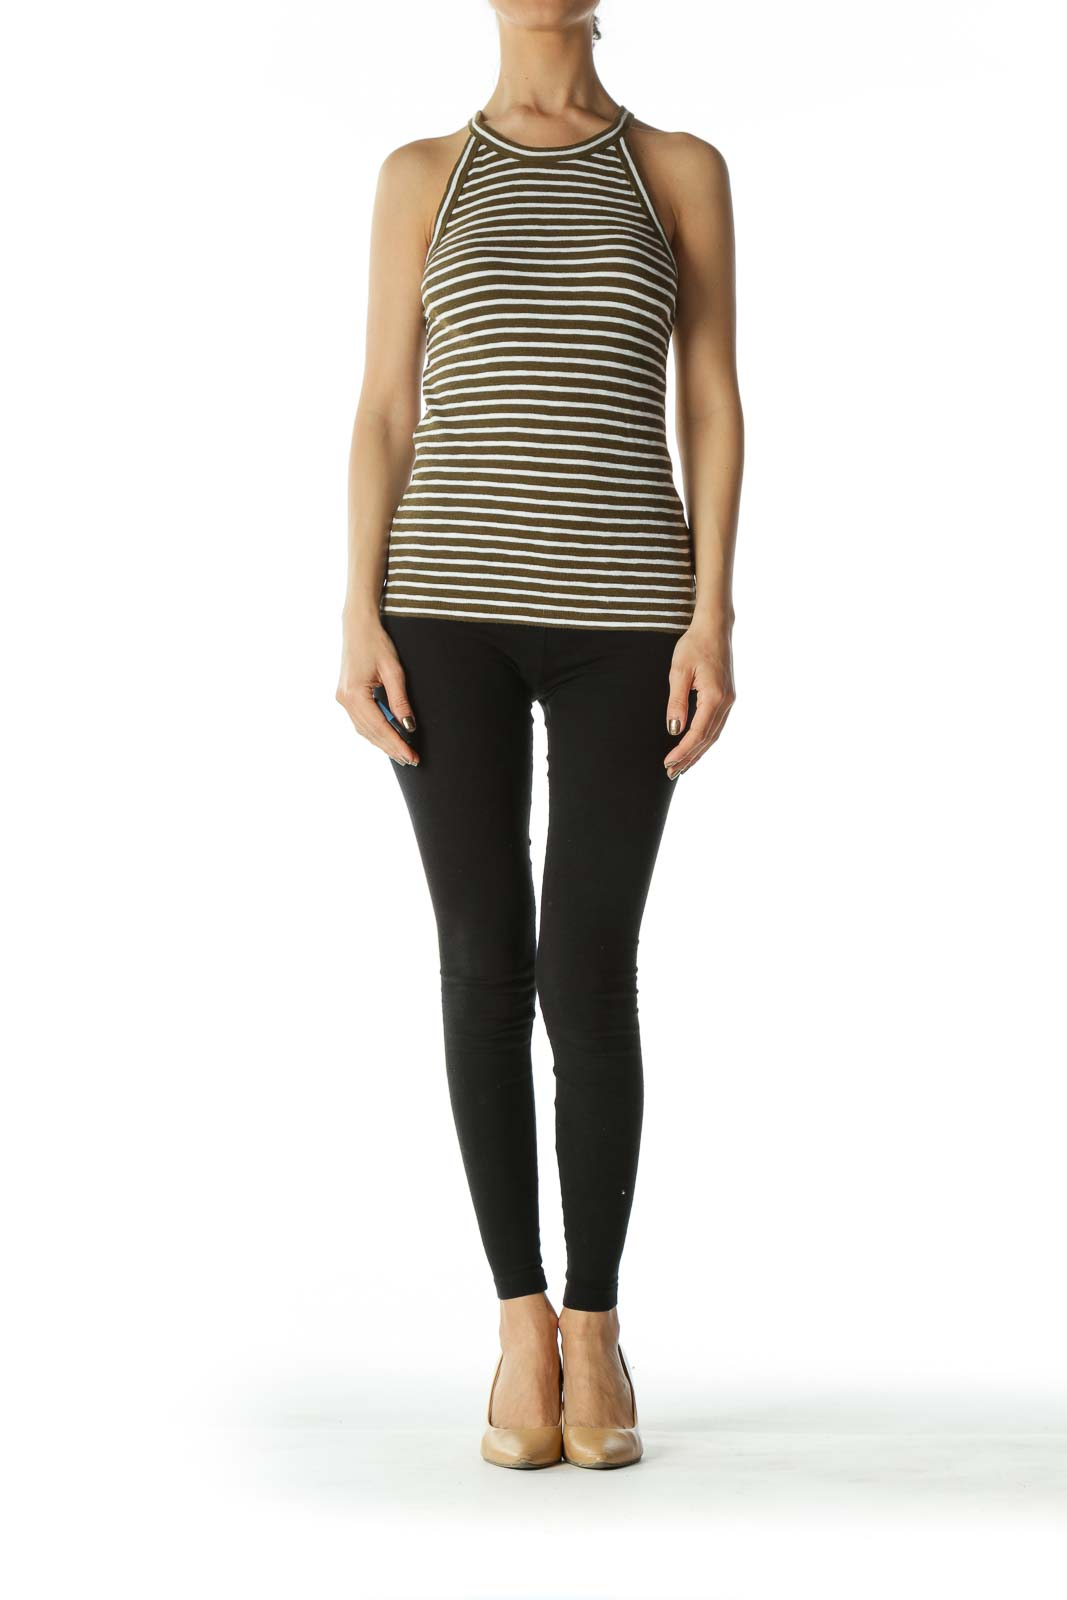 Olive and White Striped High-Neck Tank-Top